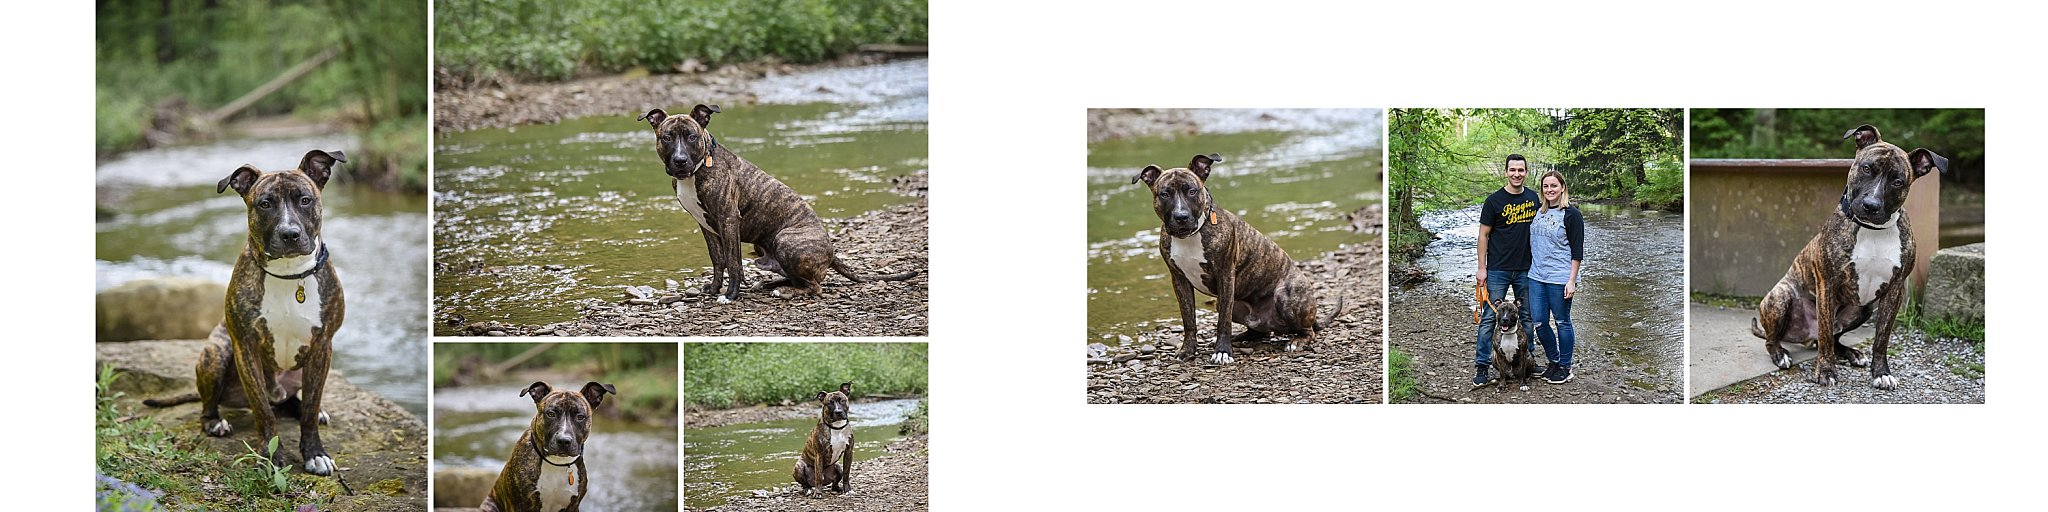 fine art album spread of a pit bull with family at Brady's Run Park